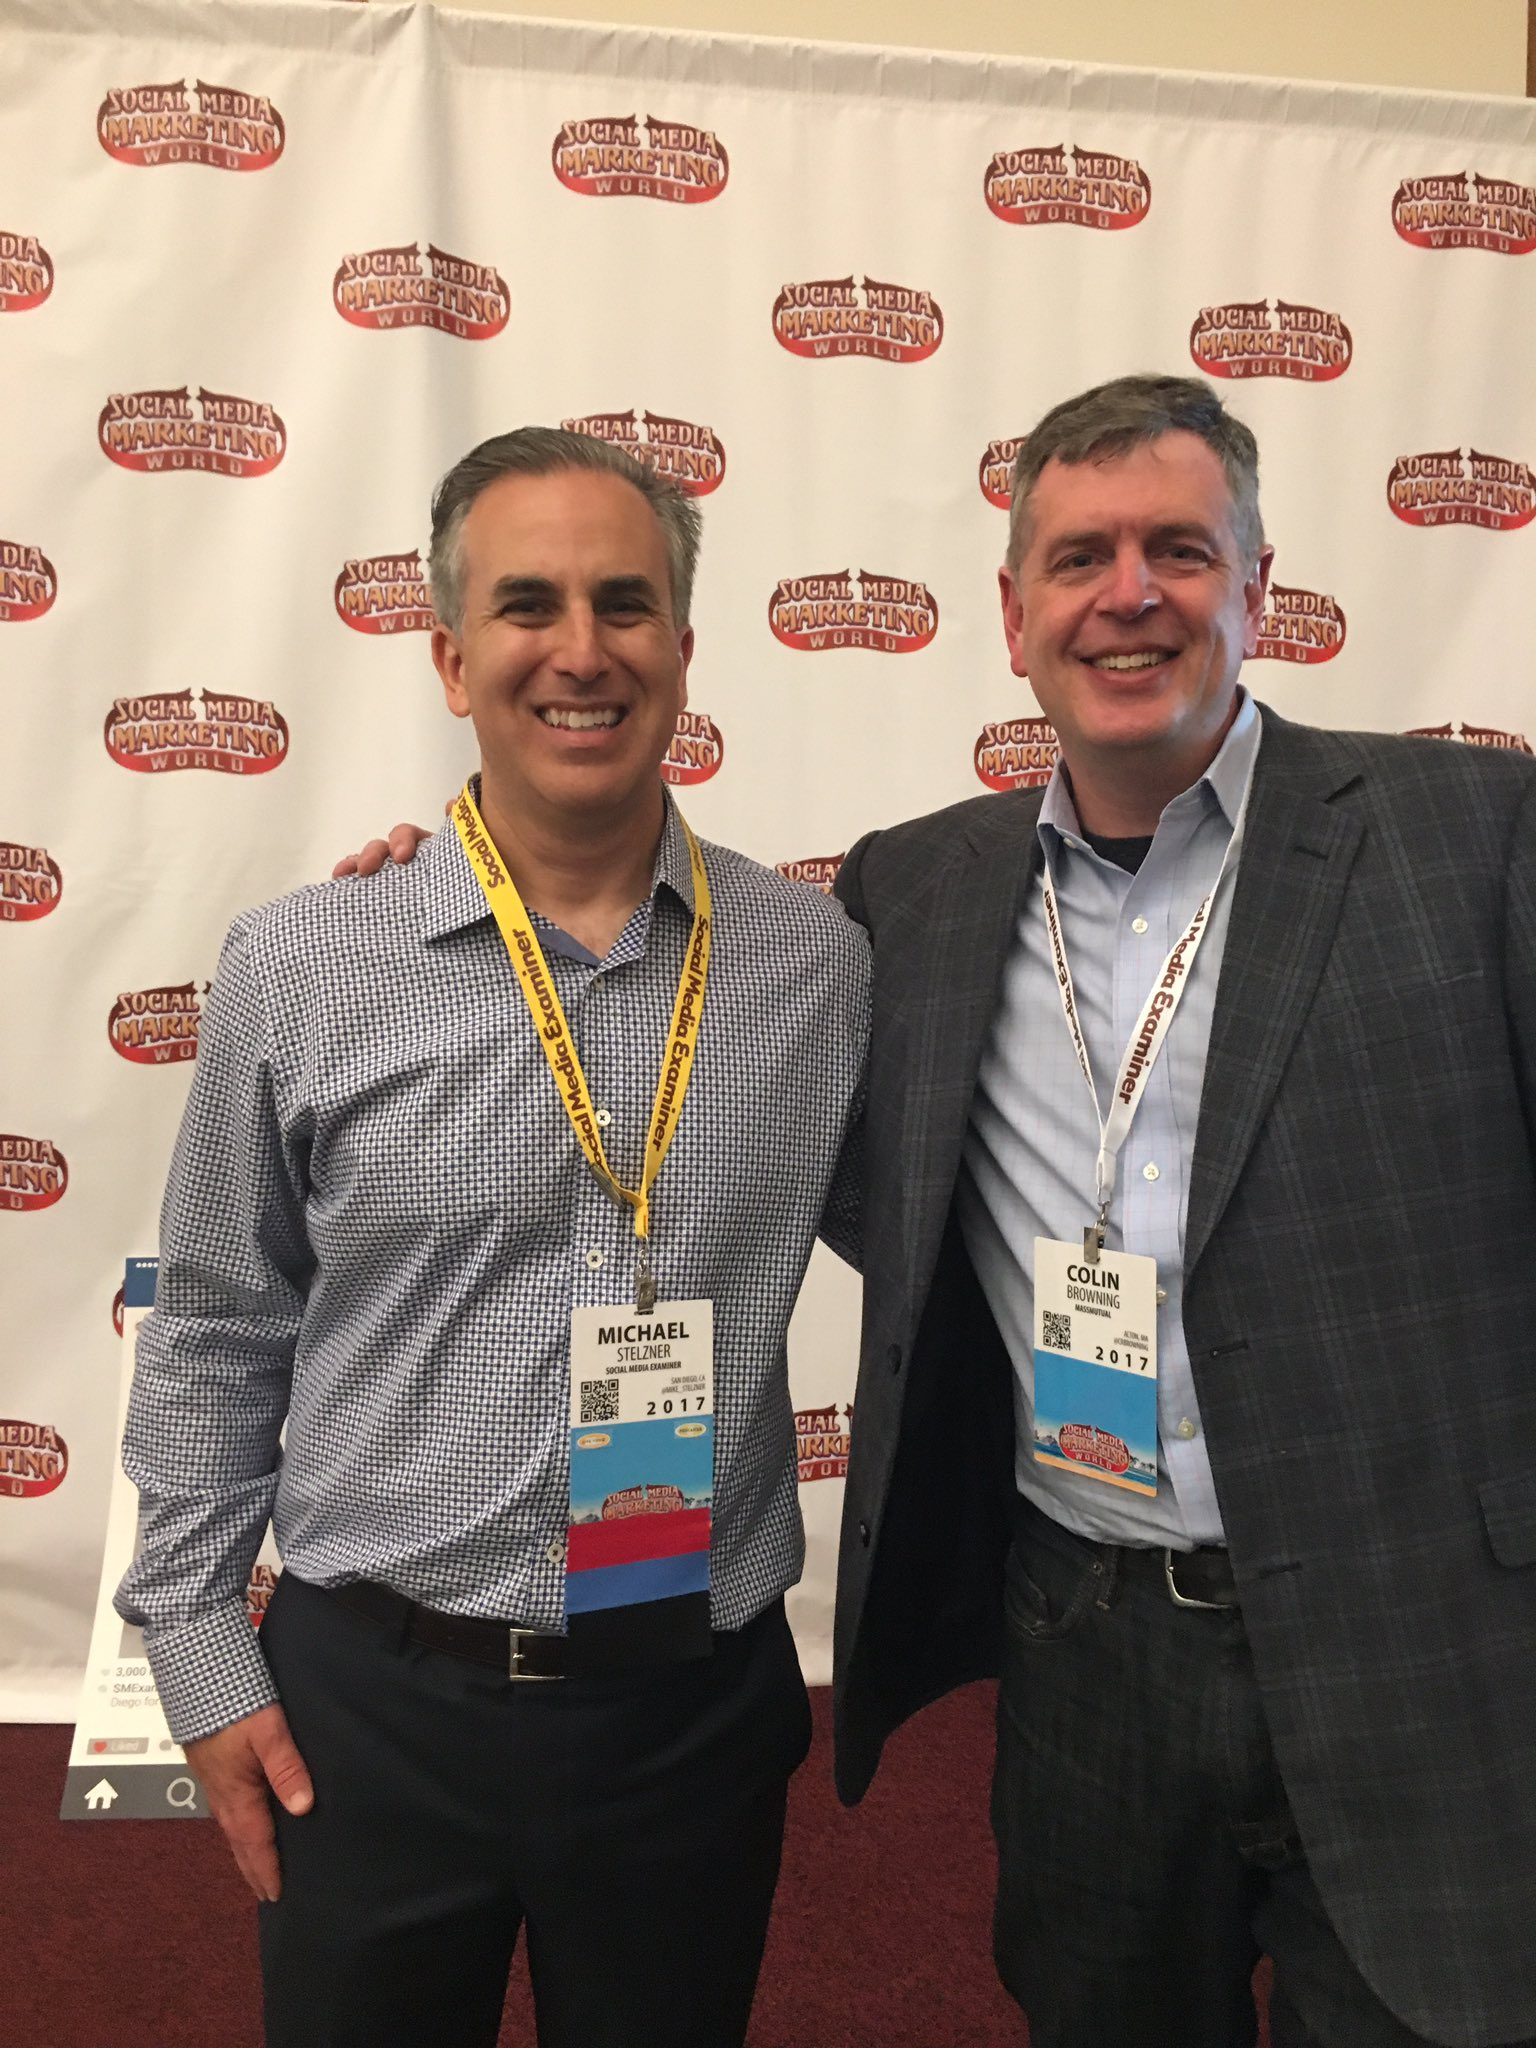 One of many highlights this week at #SMMW17: meeting @Mike_Stelzner & thanking him for his podcasts that have boosted my career https://t.co/amPbTg8JN2